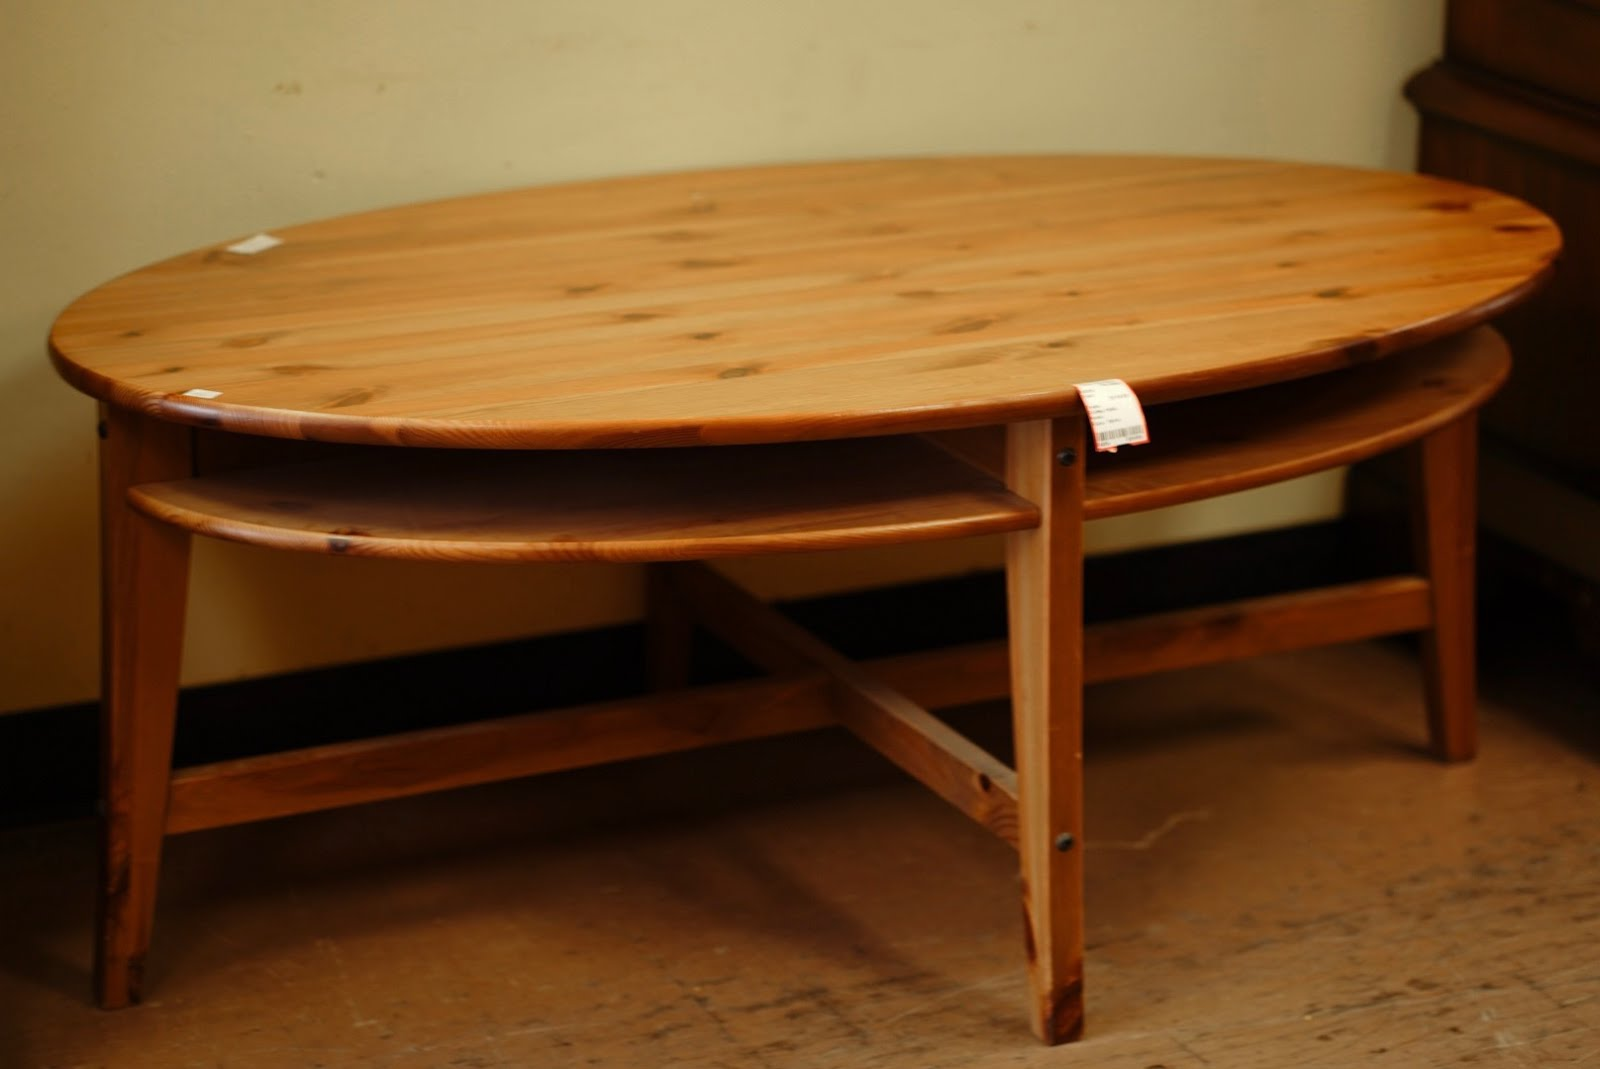 Uhuru Furniture Collectibles Sold 33234 Lindhult Knotty